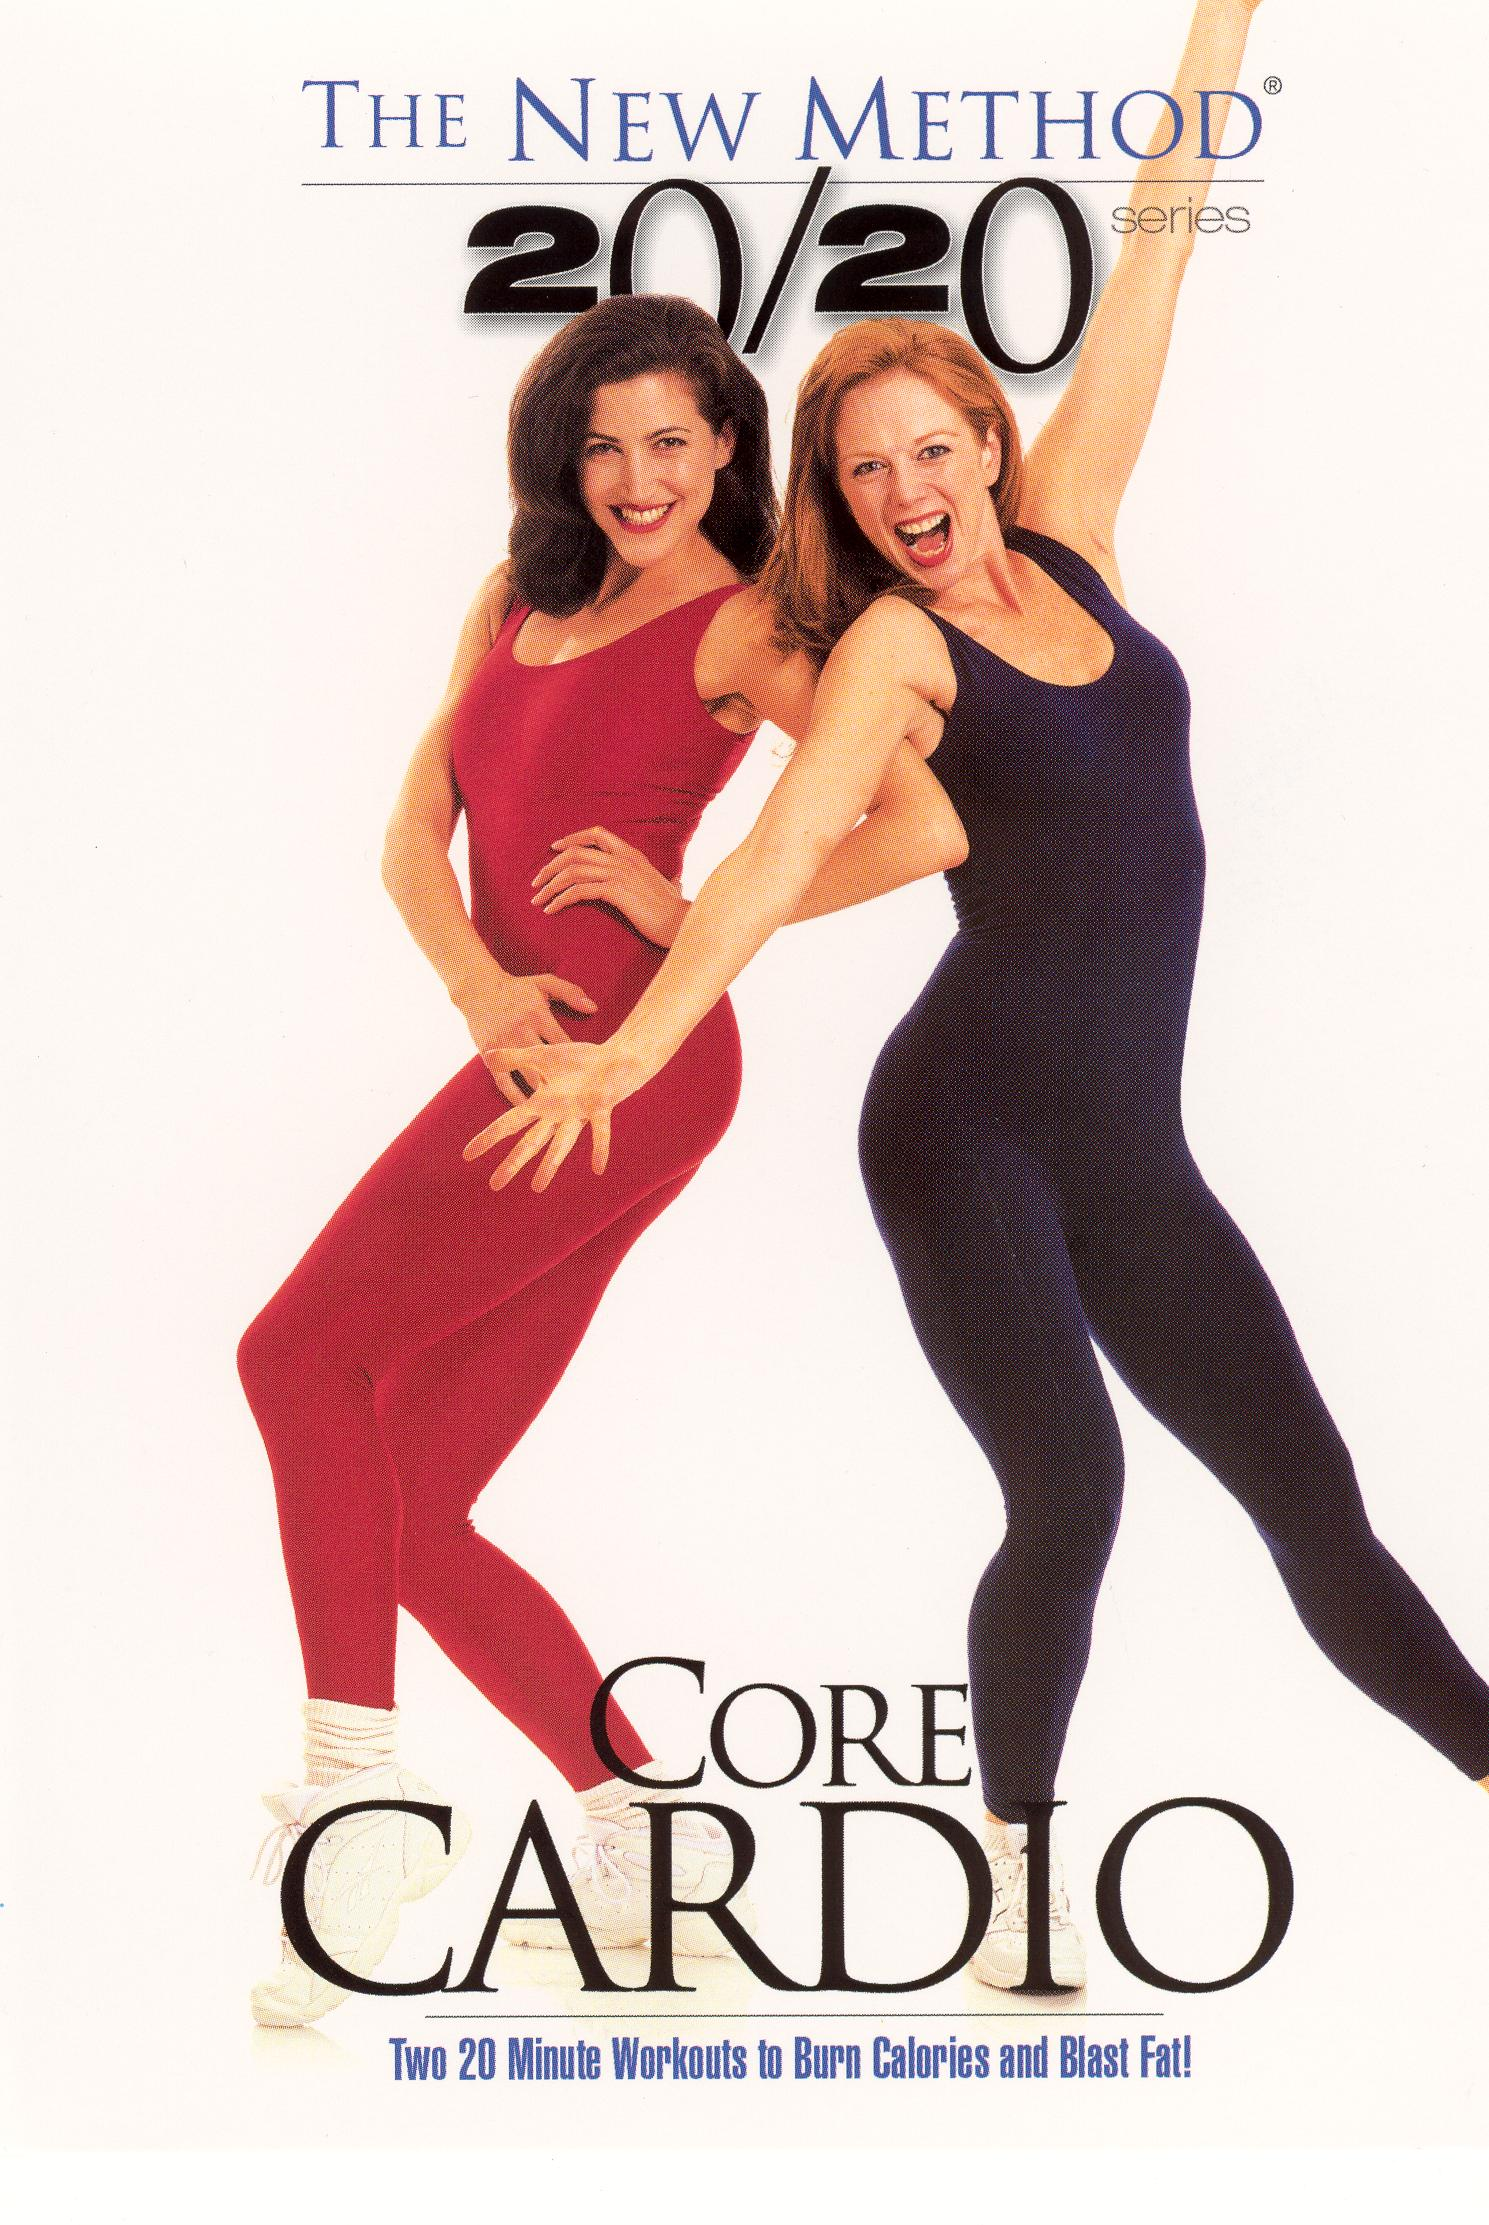 The New Method 20/20: Core Cardio